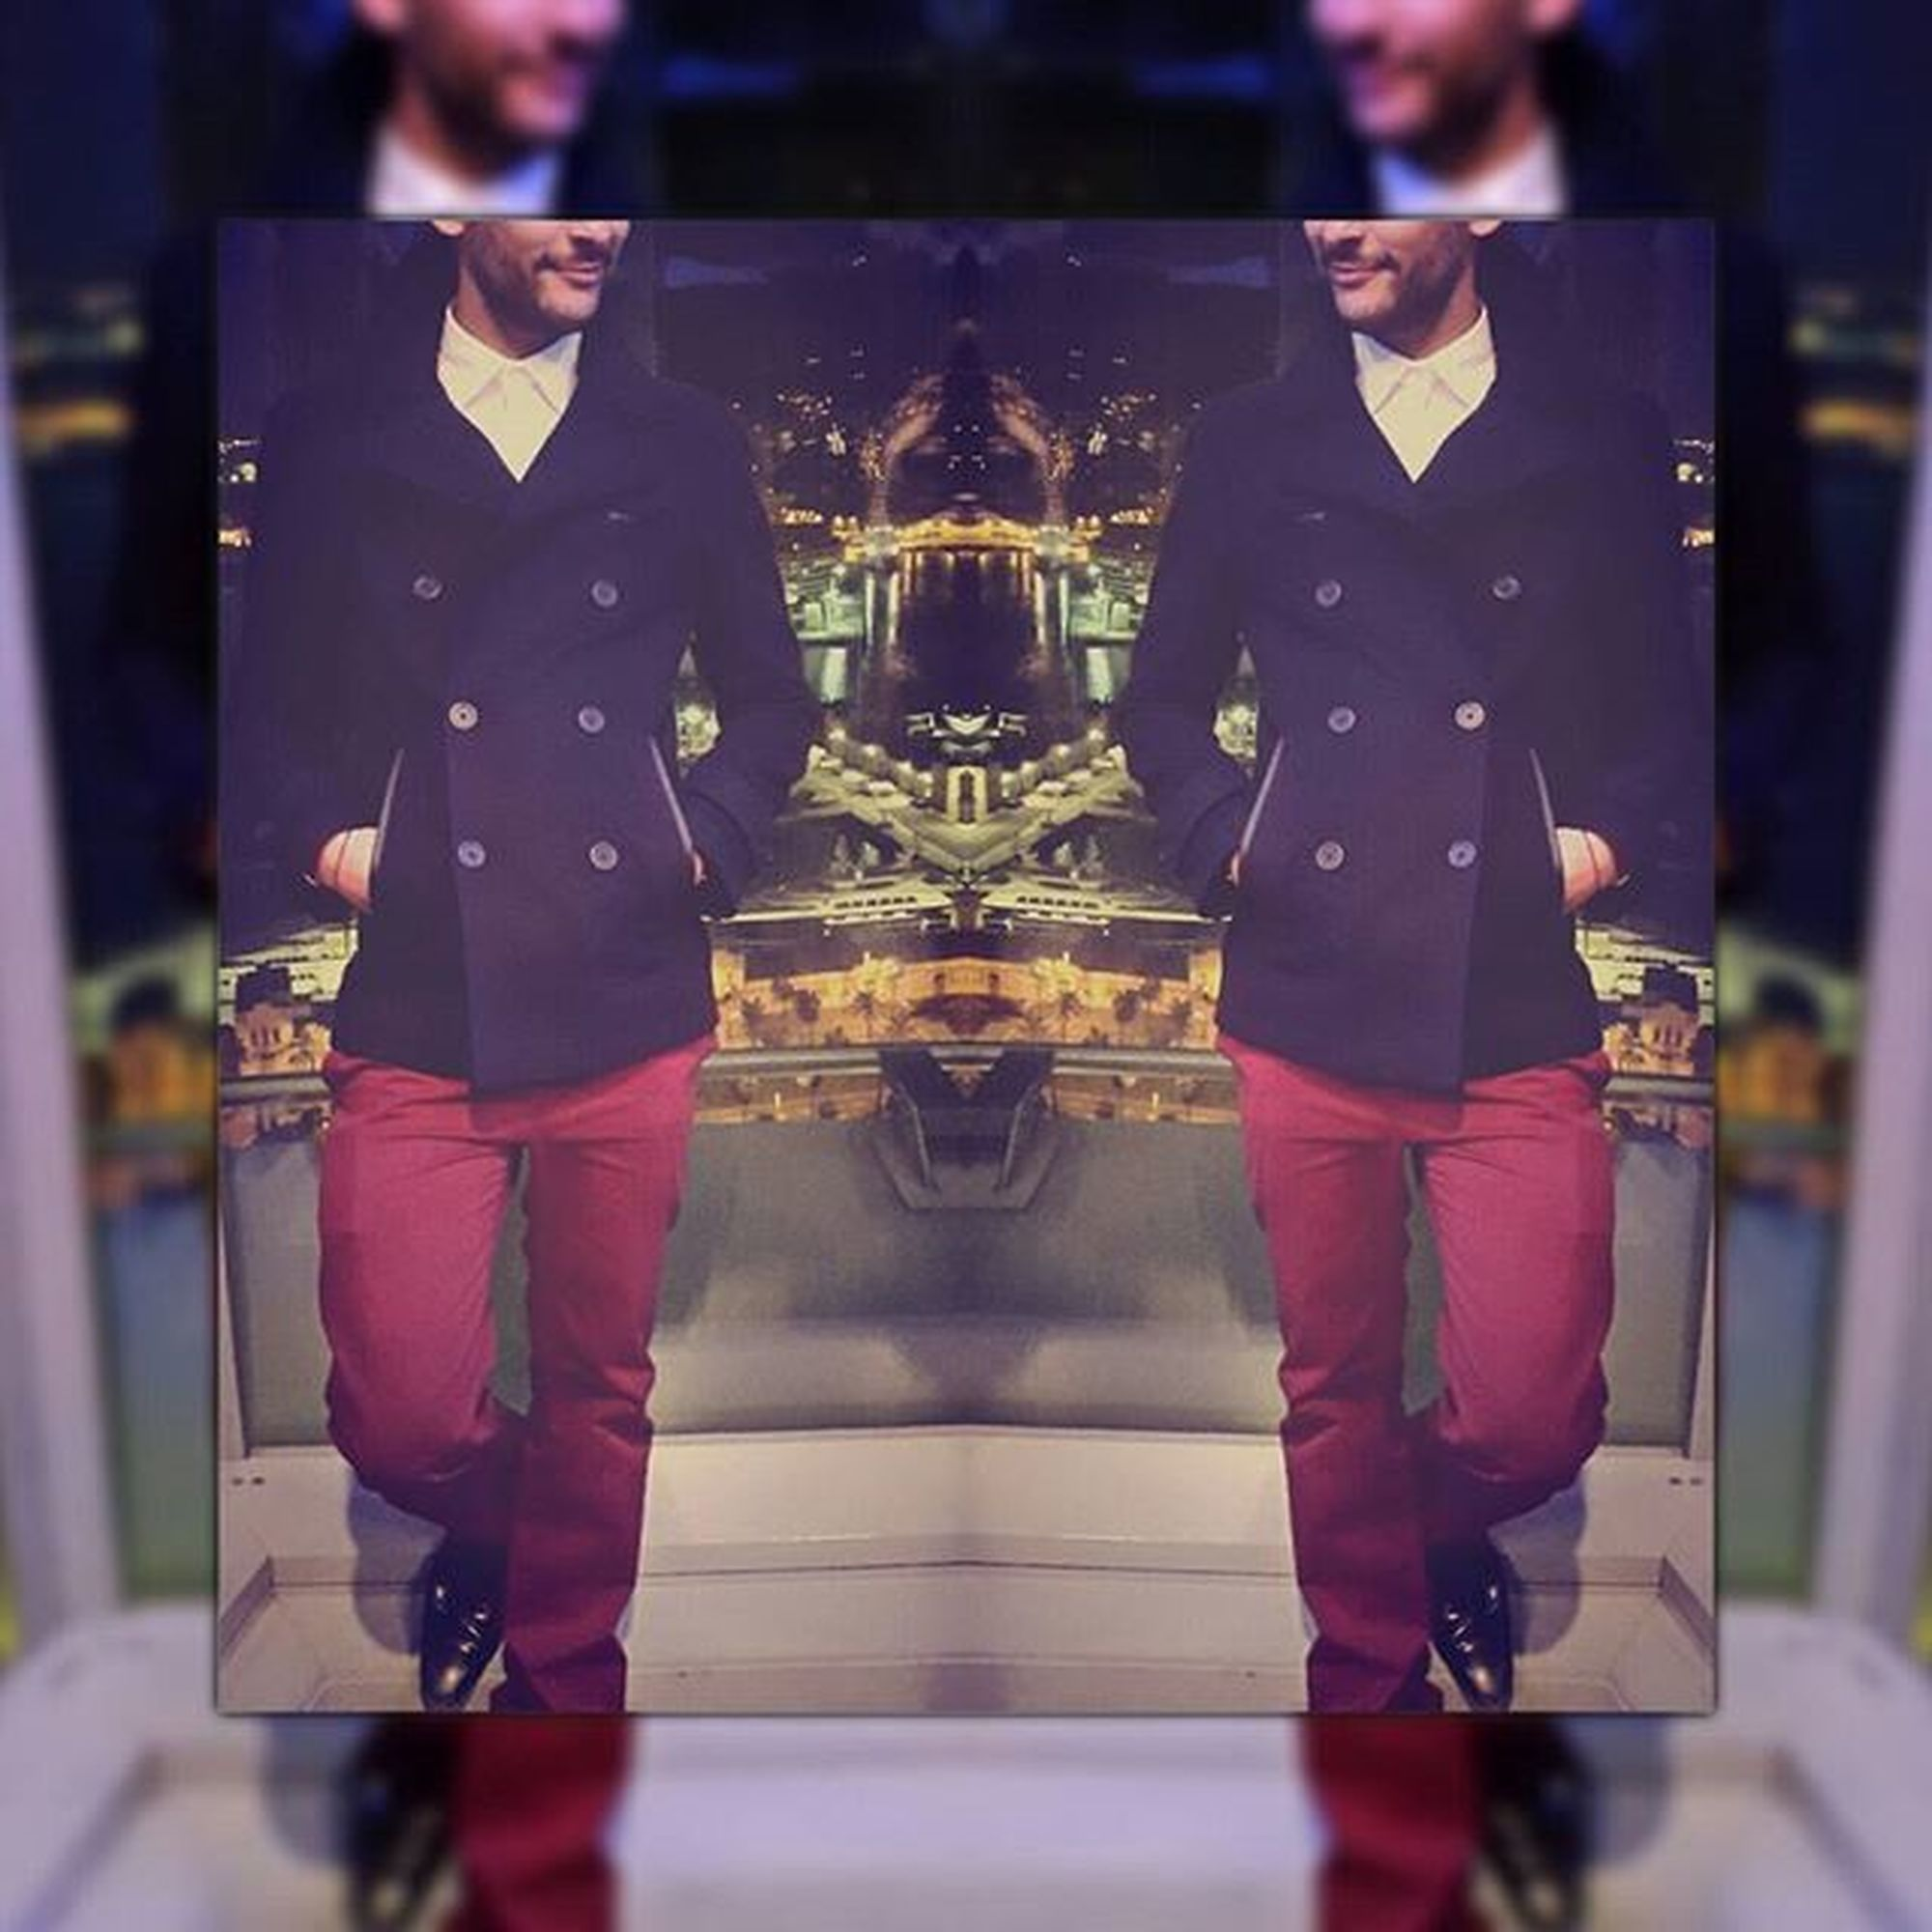 Remember Winter 2014 Barcelone Barcelona Whotel Whotelbarcelona Wbarcelona Eclipse Eclipsebar Dandy Elegant Dandystyle Caban Redpants  Merclondon Marin Fashion Mode Chilling Saturdaynight Montpellier Mtp